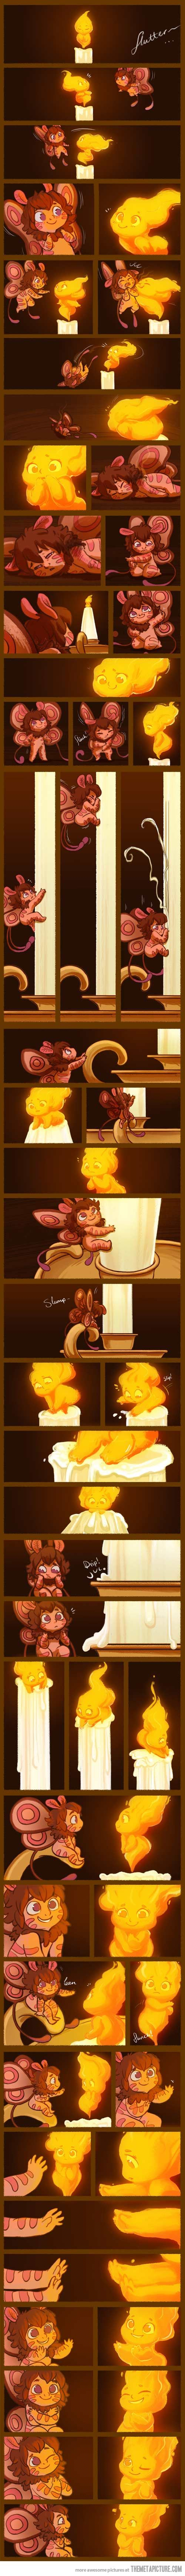 The Moth And The Flame - This is one of the cutest things I may have ever seen.